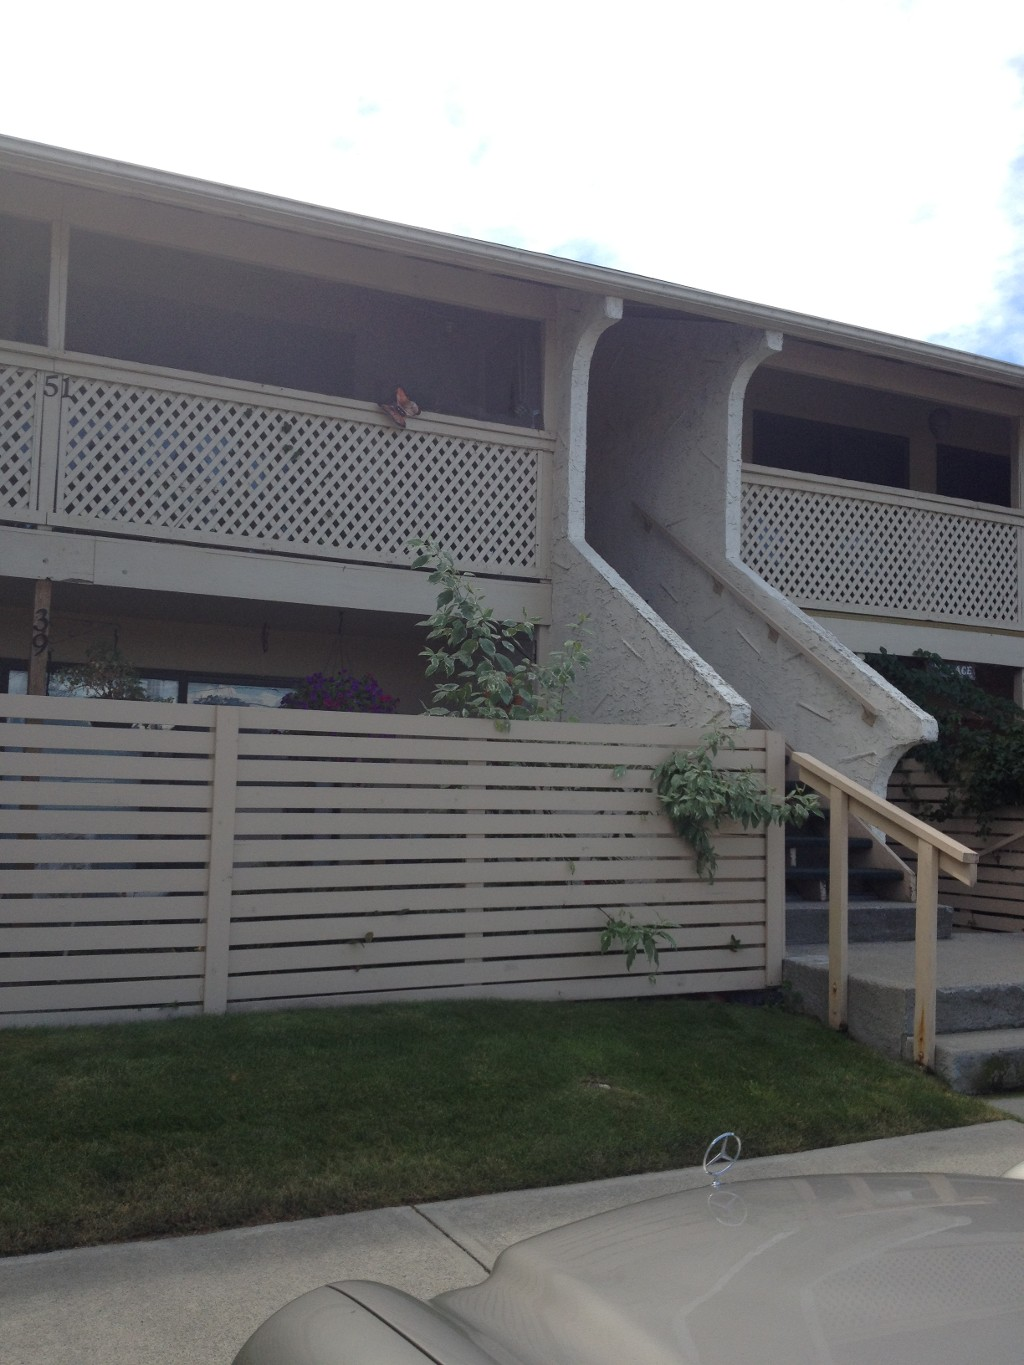 Main Photo: 53 310 Yorkton Avenue in Penticton: Main South Residential Attached for sale : MLS(r) # 140636